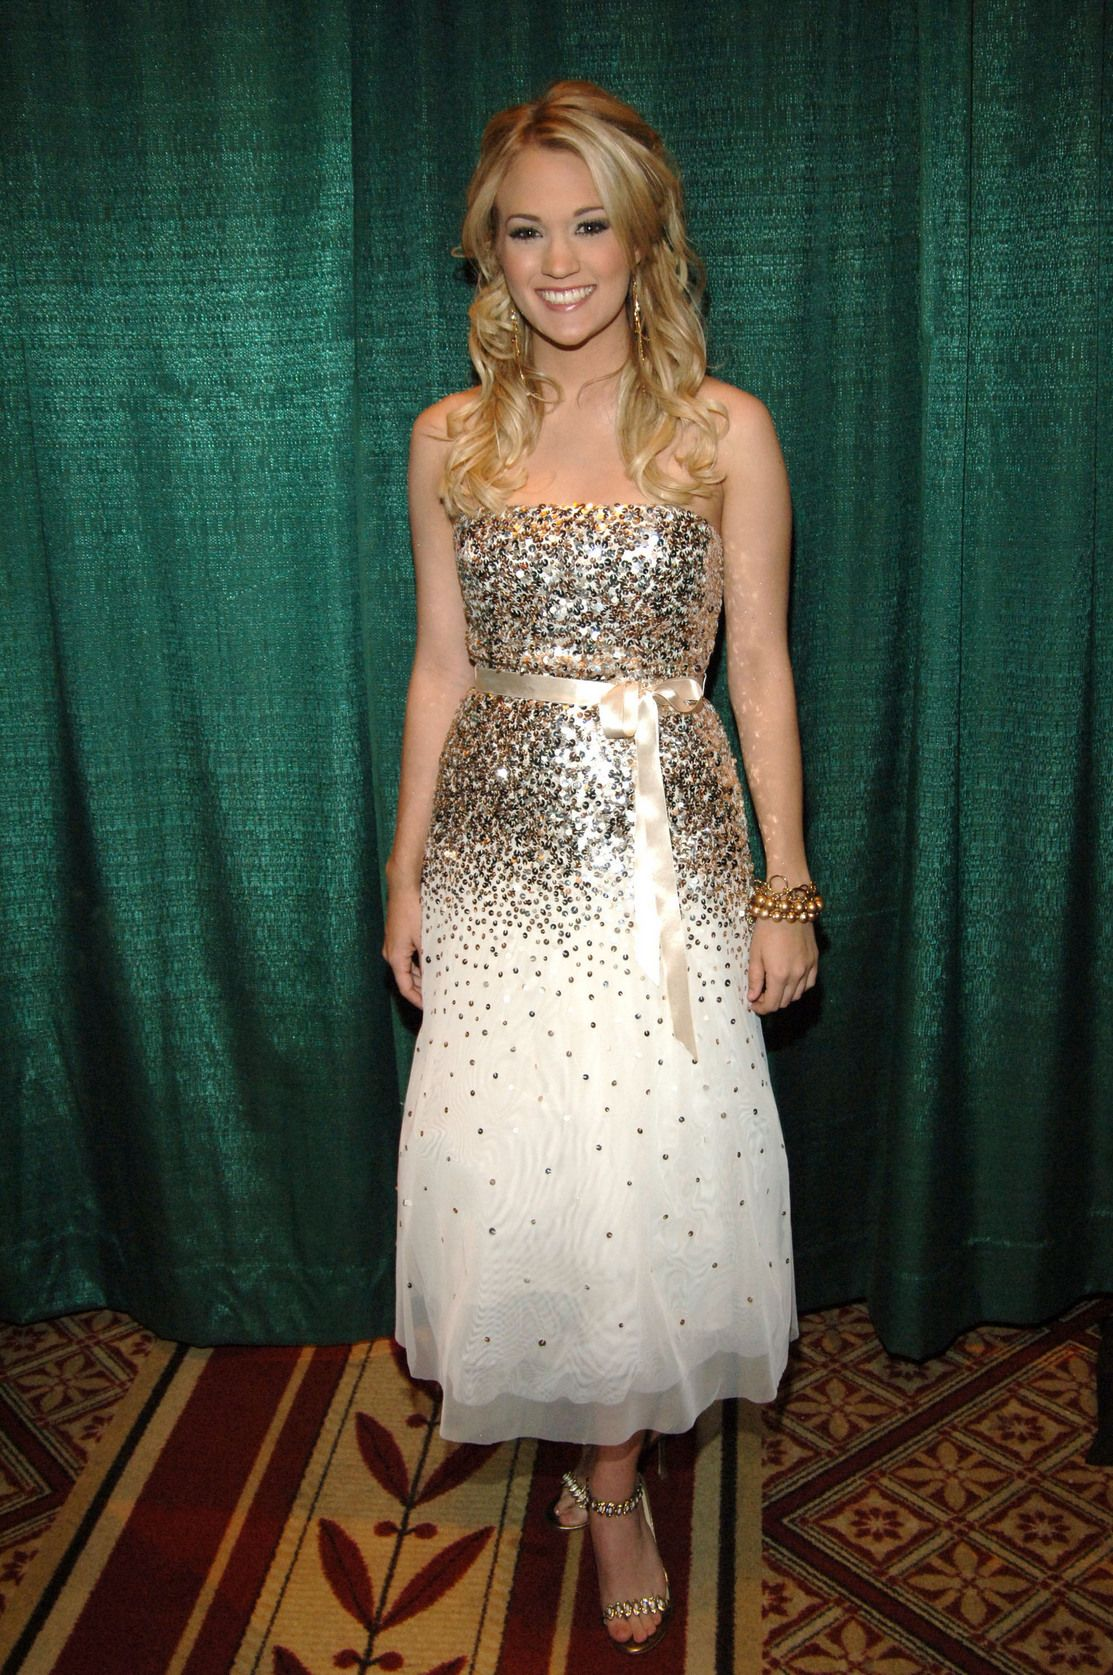 Sparkly dress future grad dresses pinterest carrie ugly shoes